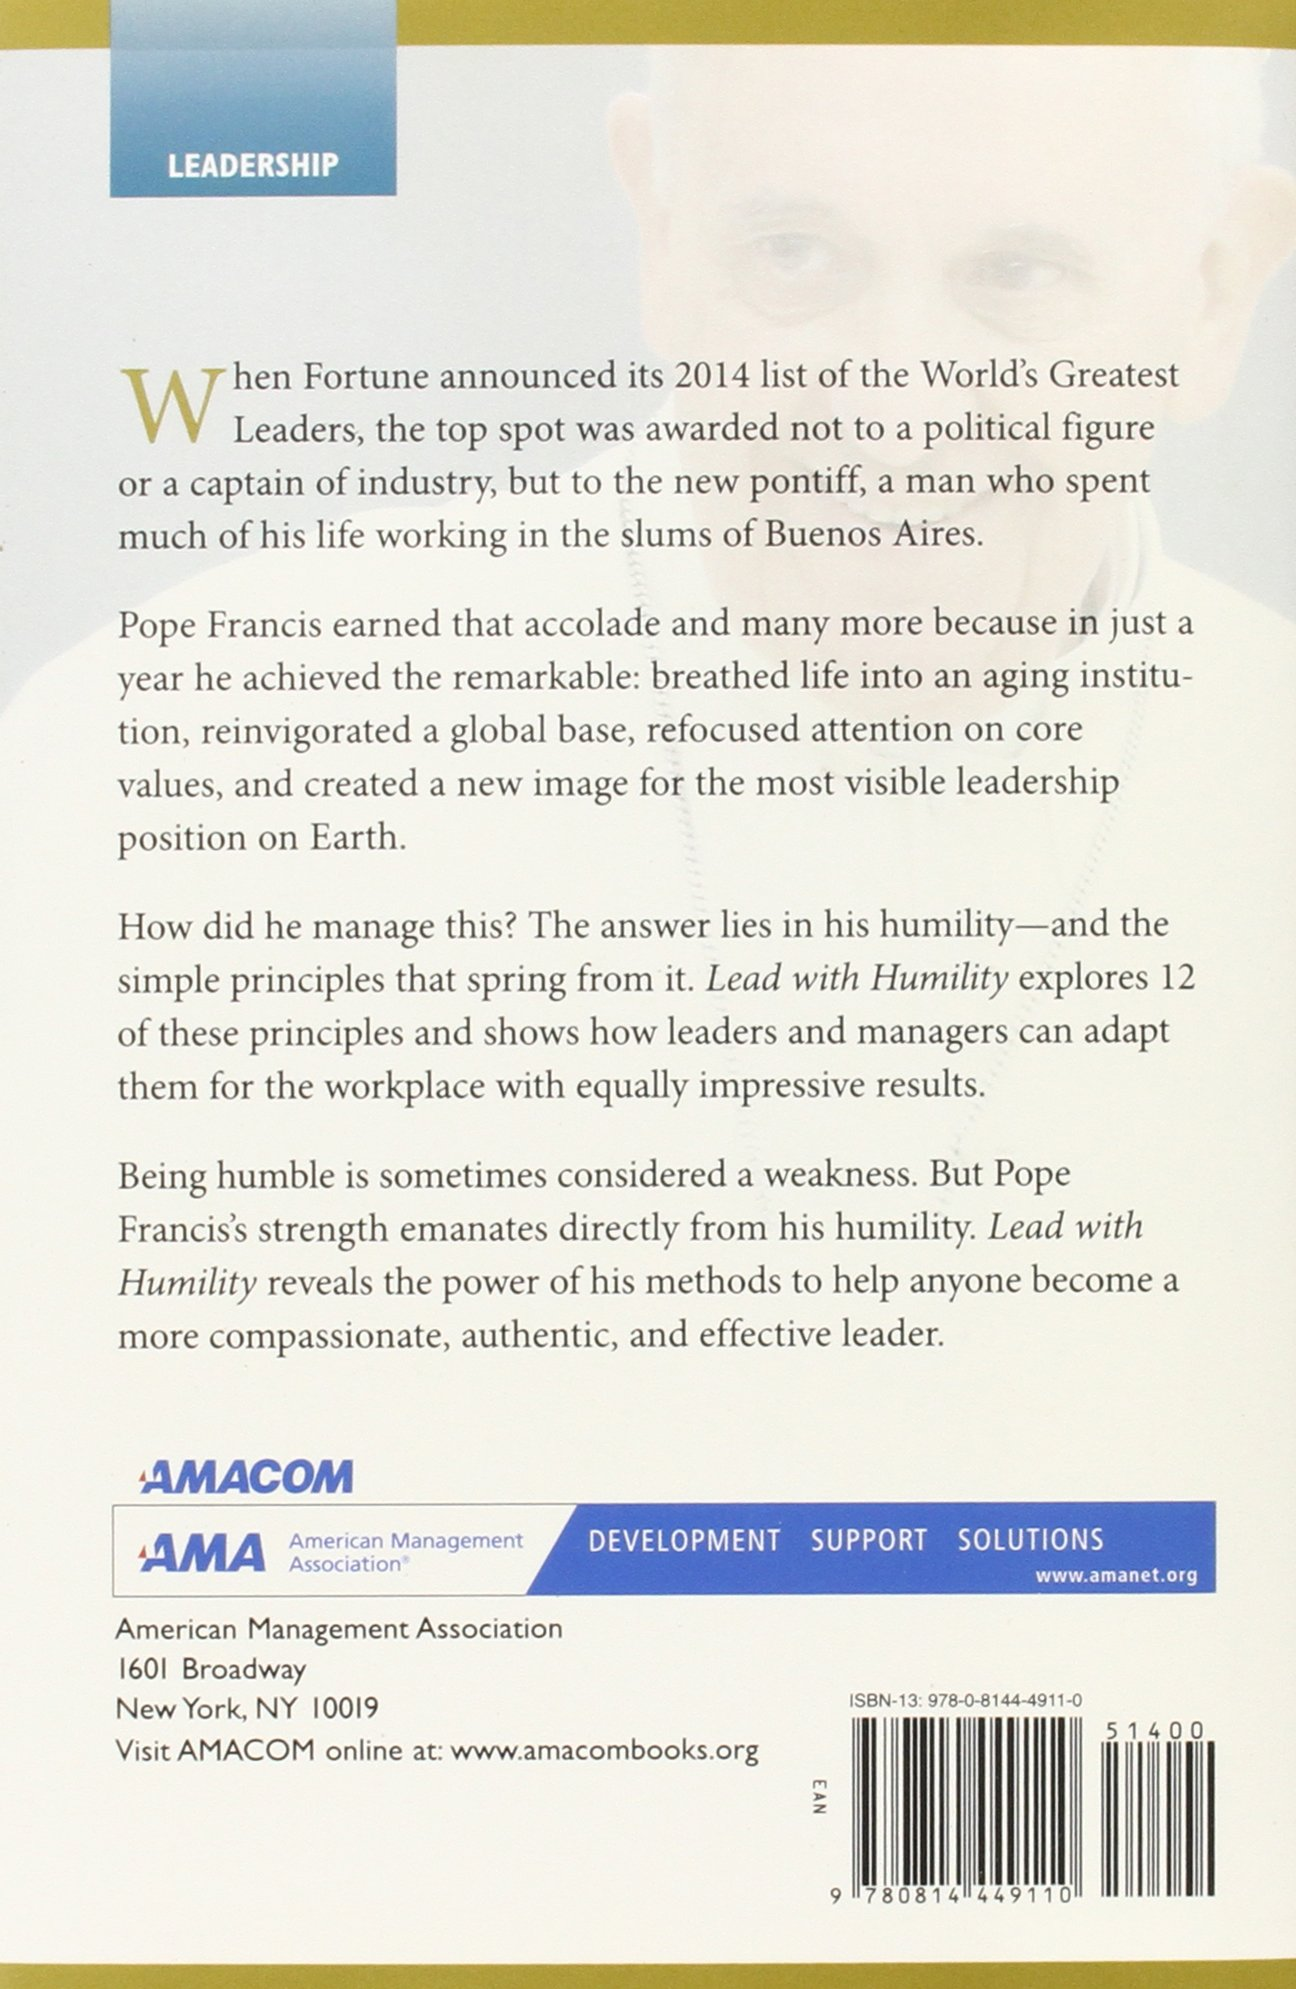 lead humility 12 leadership lessons from pope francis uk lead humility 12 leadership lessons from pope francis uk professional business management business jeffrey a krames 9780814449110 amazon com